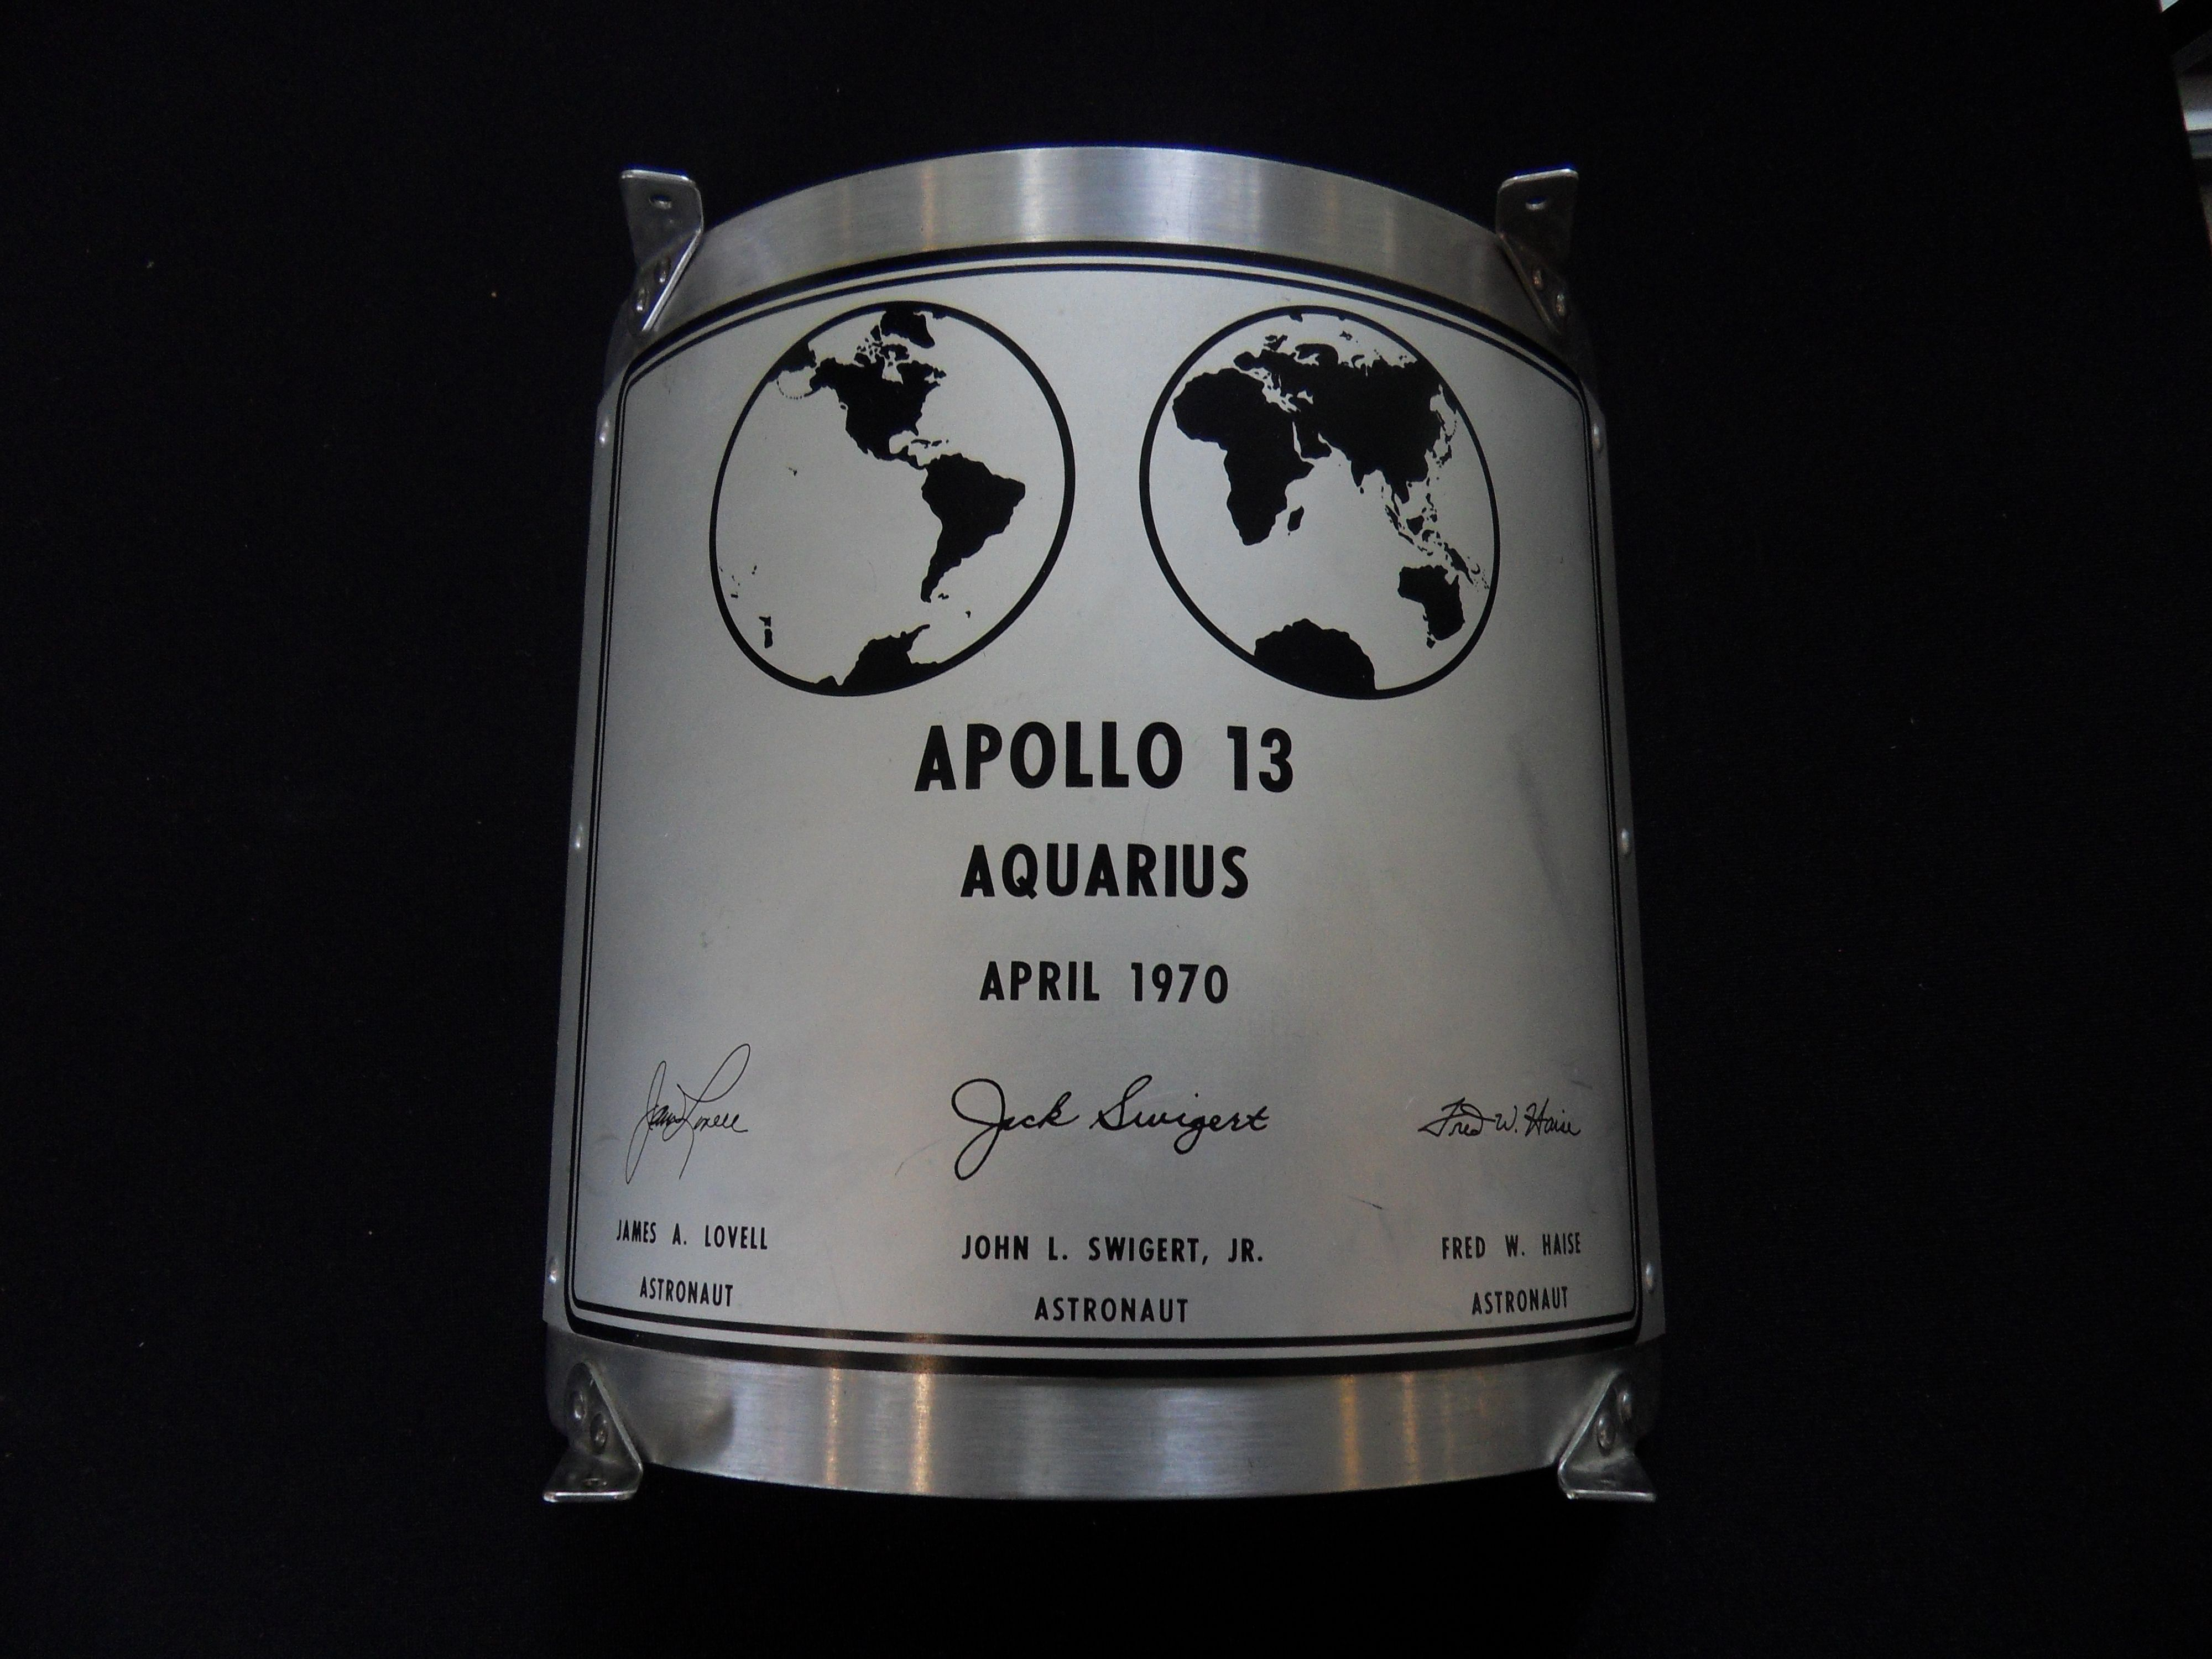 best images about apollo explosions 17 best images about apollo 13 explosions astronauts and neil armstrong